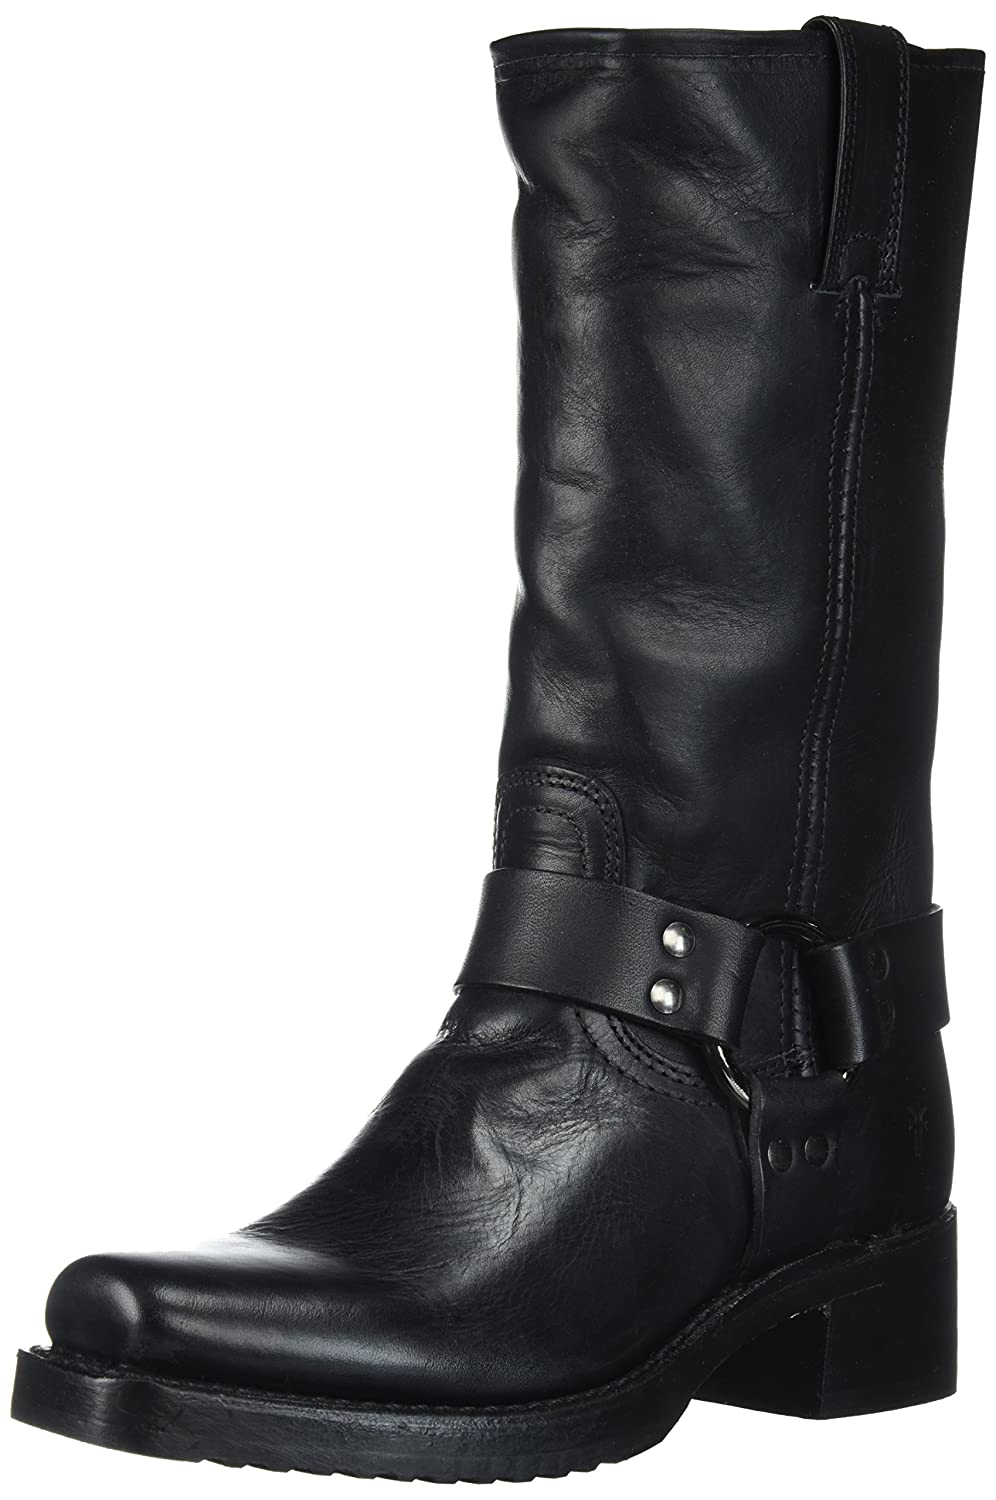 FRYE Women's Heirloom Tall Harness Boot B01N1A3U76 6.5 B(M) US|Black